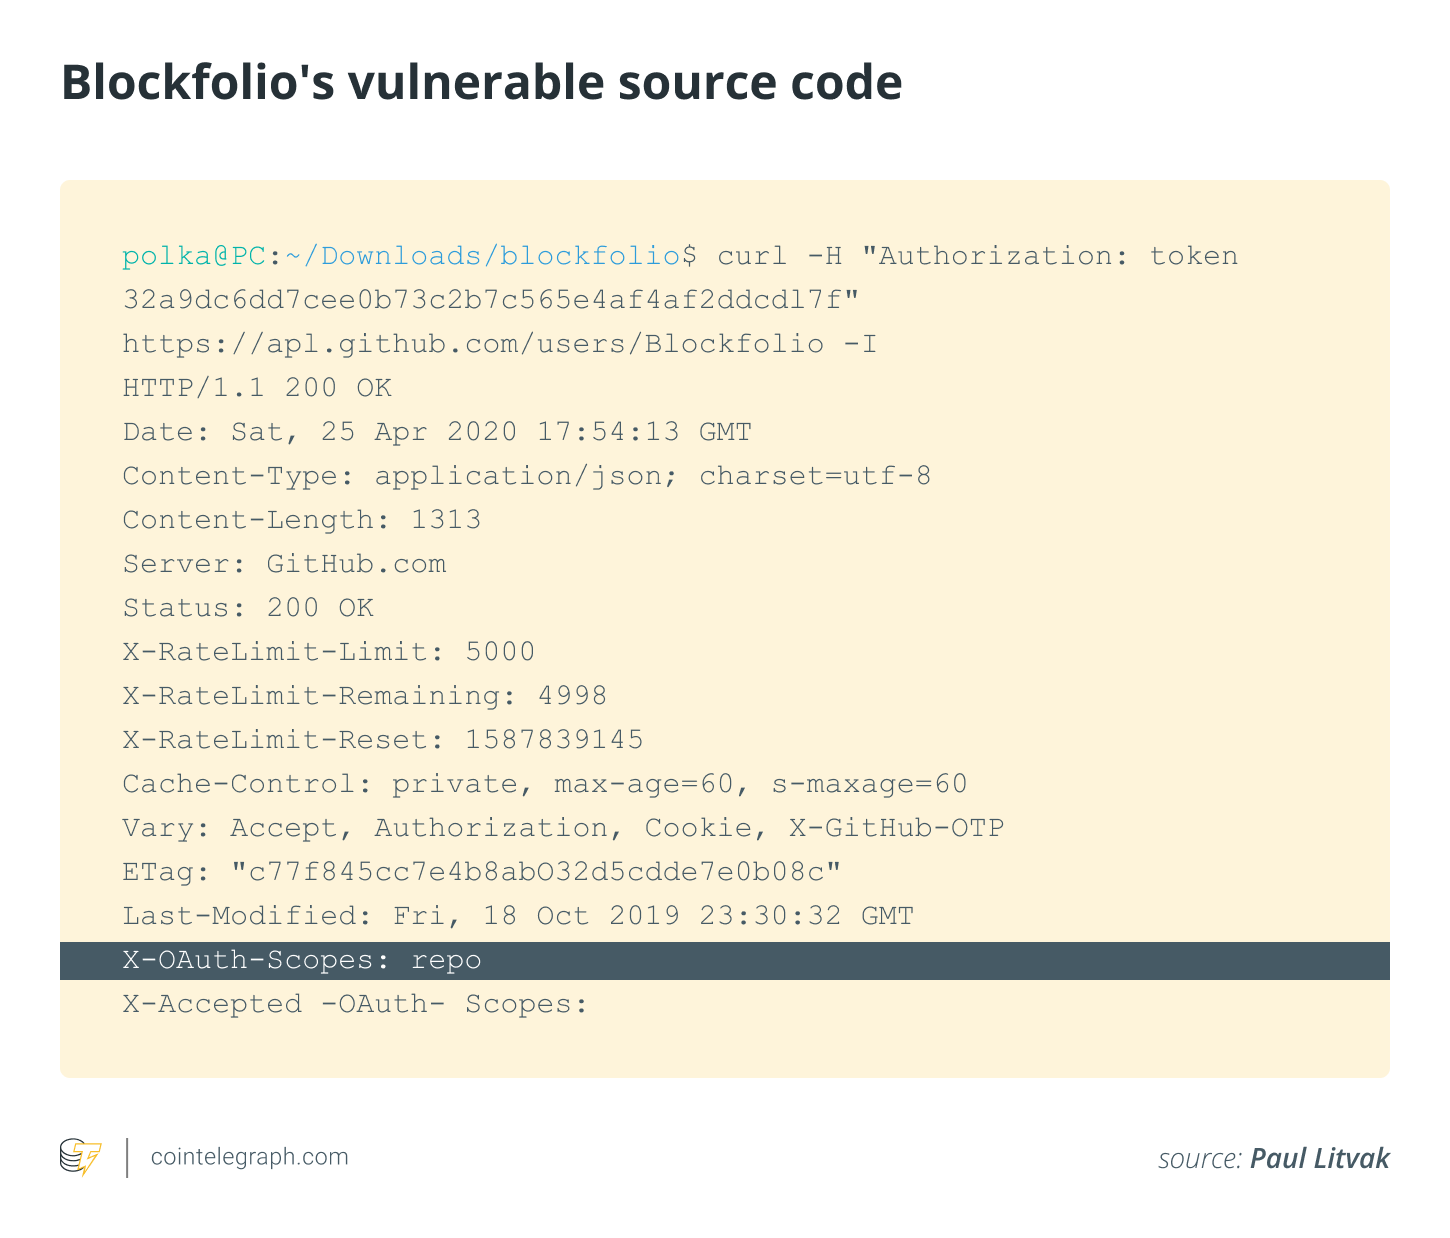 Blockfolio's vulnerable source code